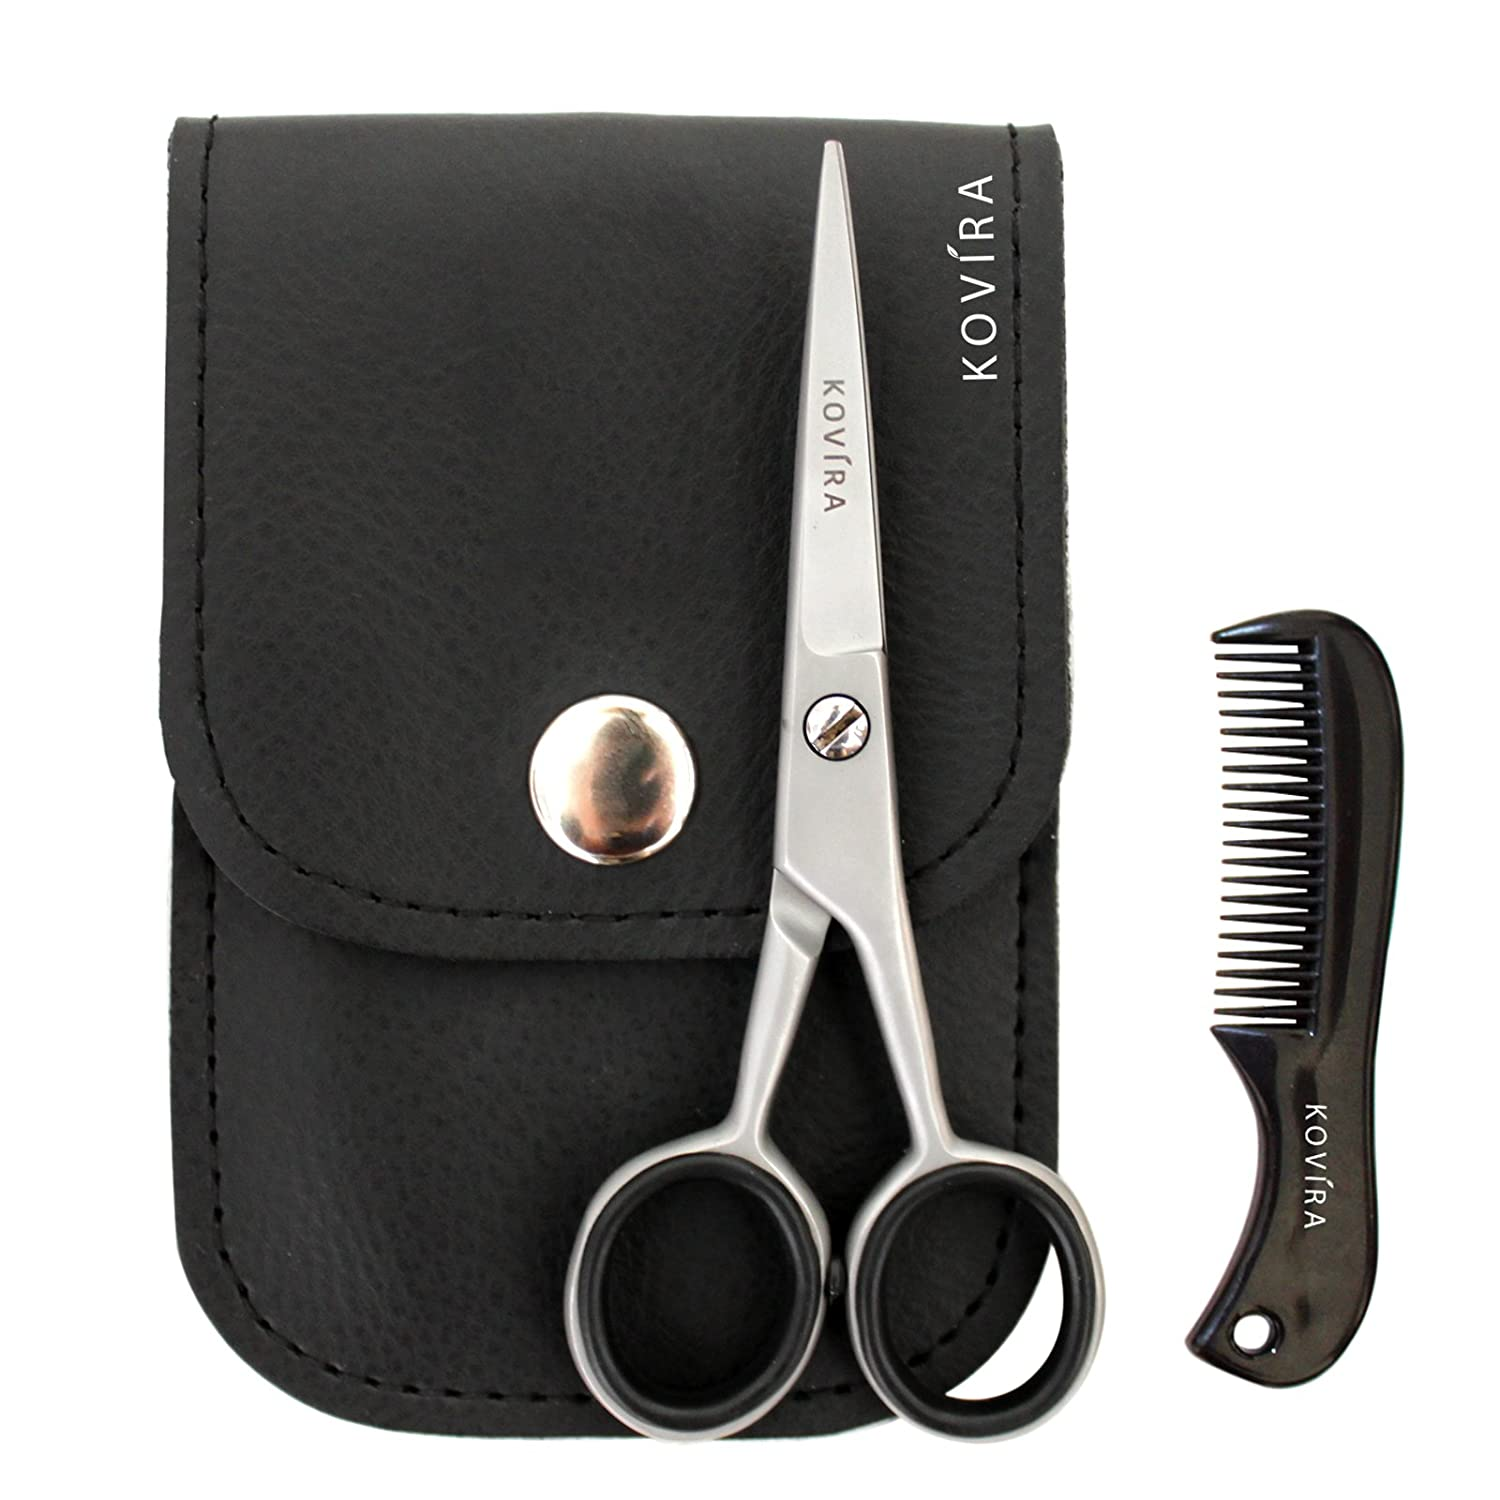 Beard and Moustache Scissors with Comb for Precise Facial Hair Trimming by Kovira - Beard Scissors Kit with case for Facial Grooming - Beard Trimming - Moustache Grooming Set - Beard Comb